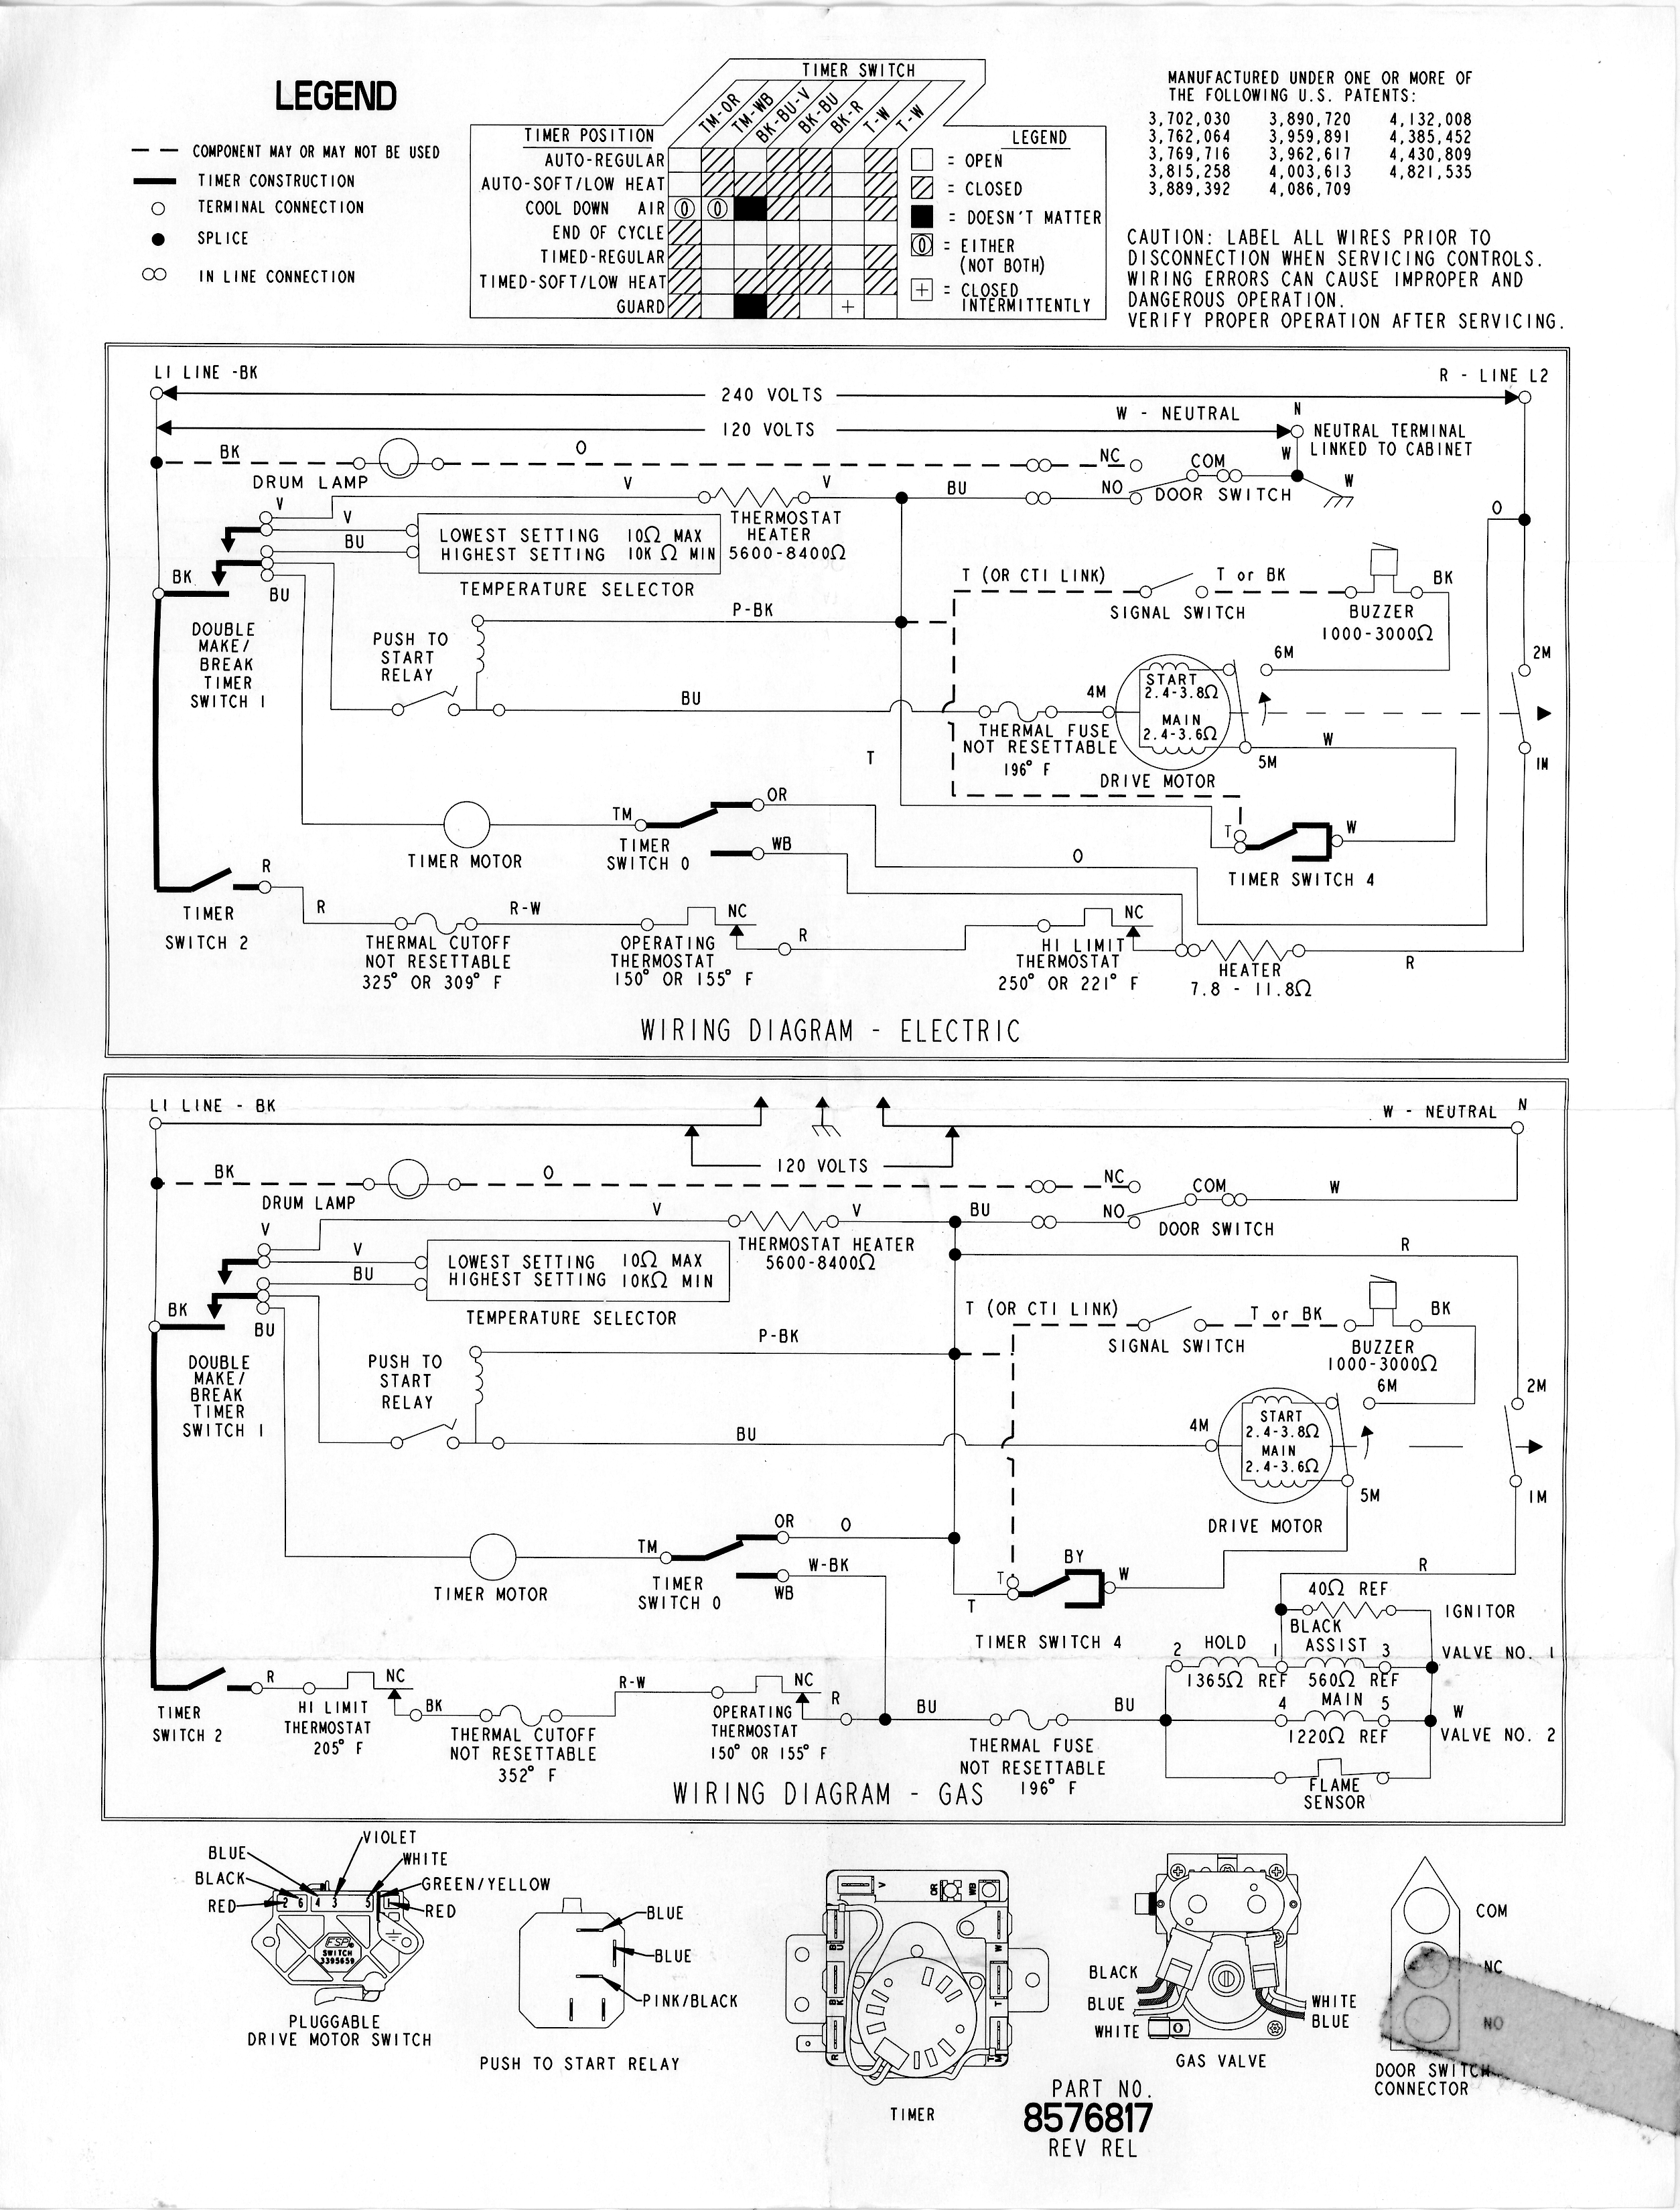 Whirlpool Clothes Dryer Schematic : Whirlpool : Free Download, Borrow, and  Streaming : Internet Archive | Whirlpool Wiring Schematic |  | Internet Archive